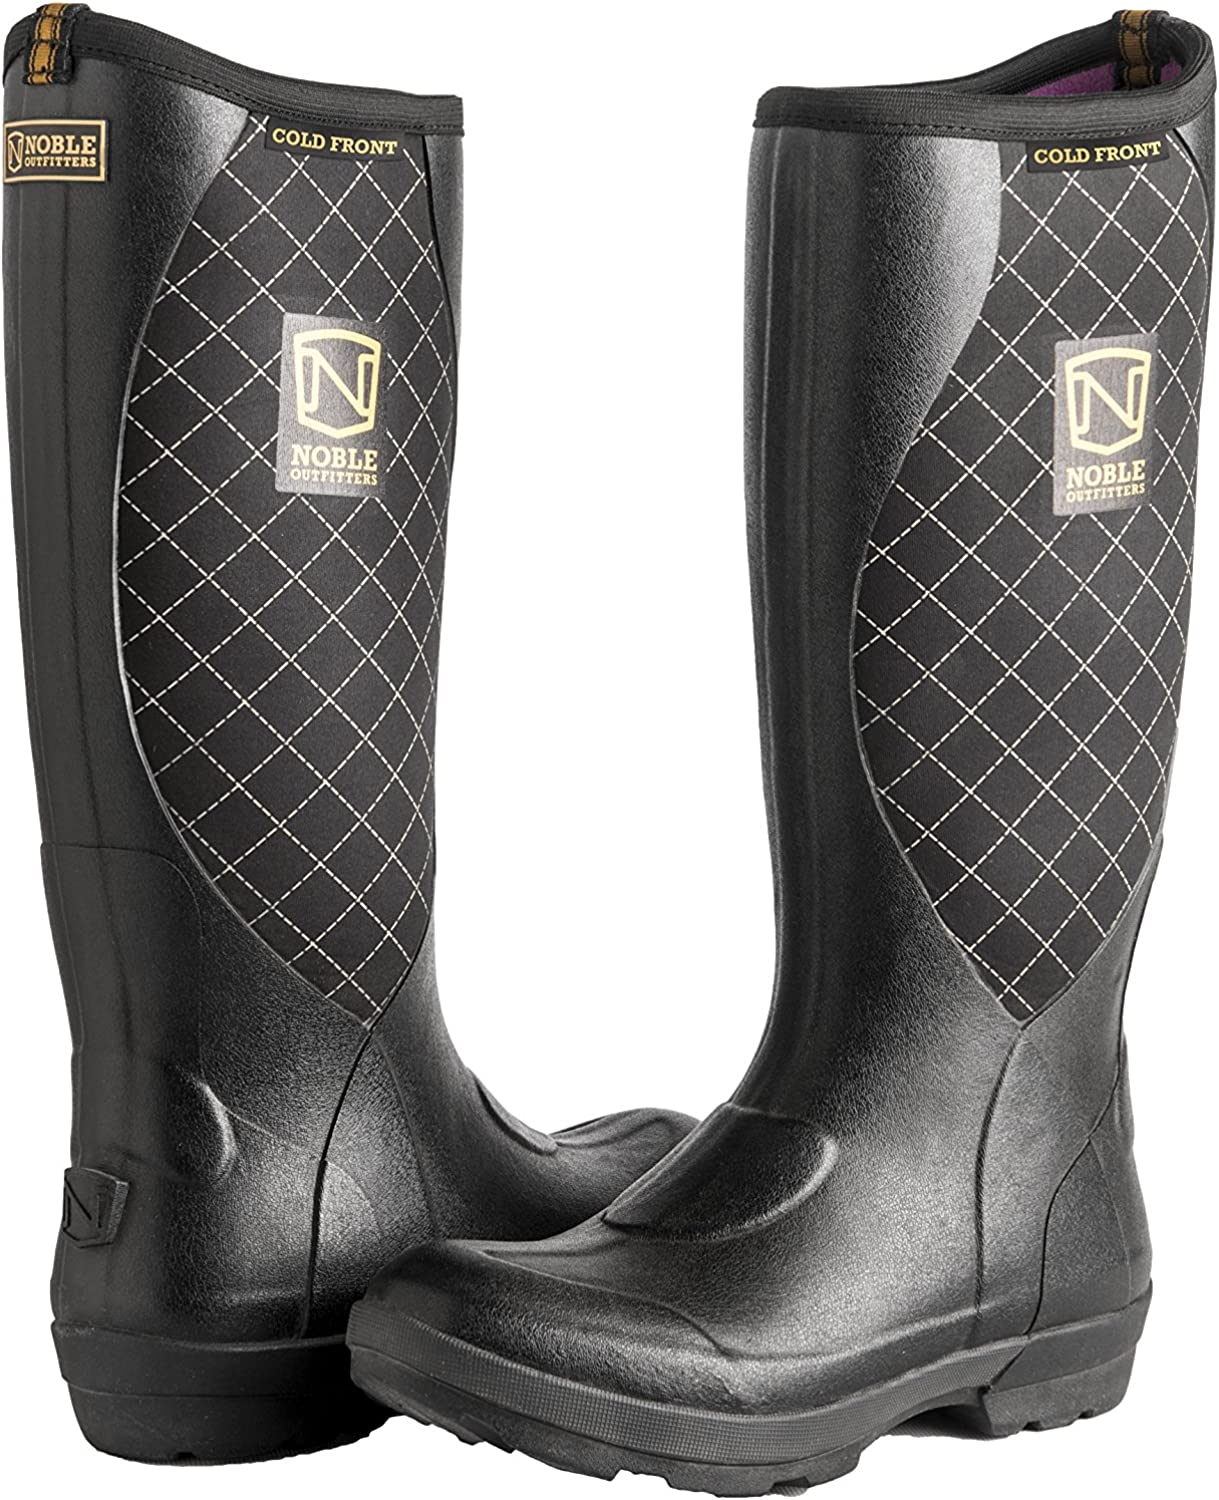 Noble Outdoor Boots Womens Muds Muck Cold High 9 Black 66002